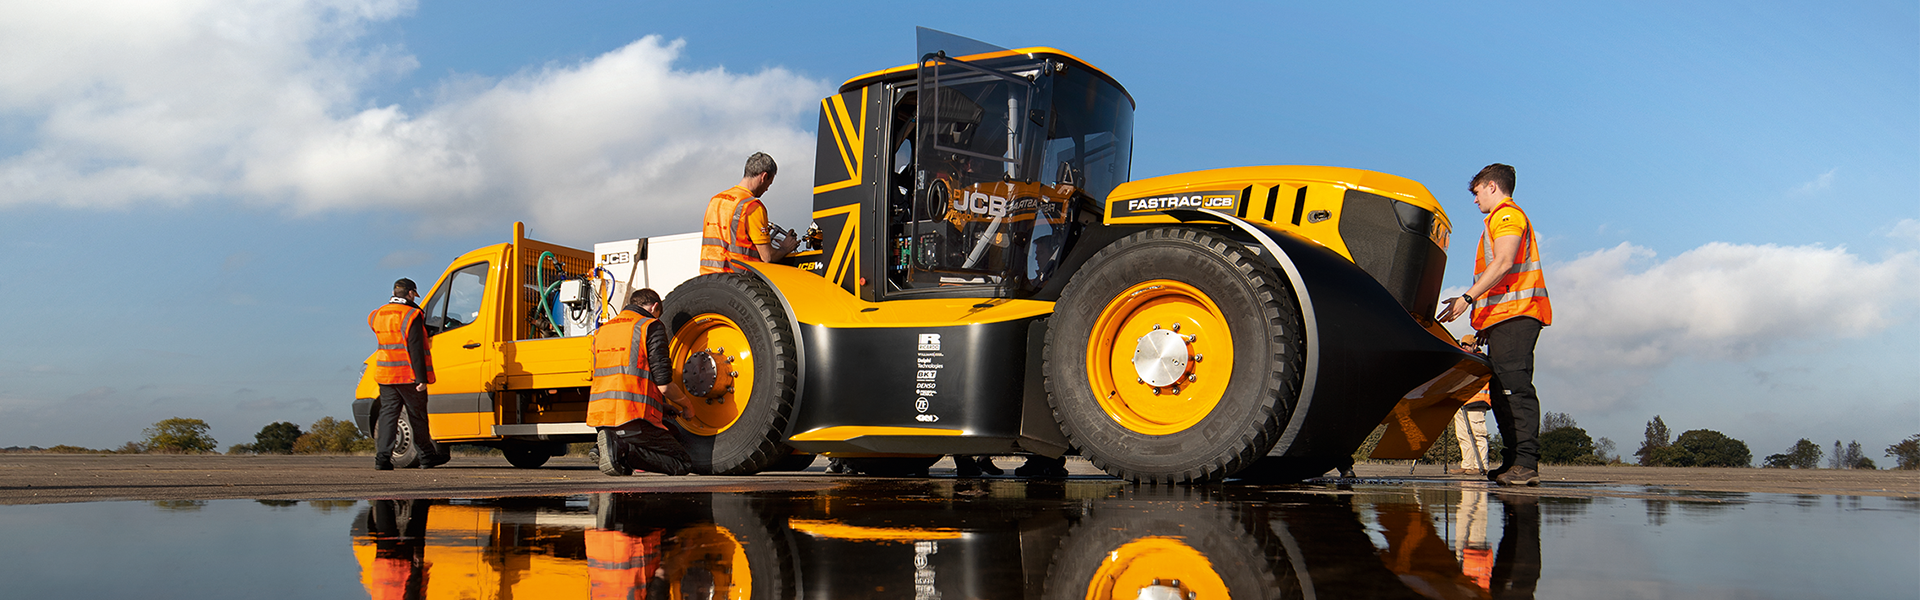 Ricardo's role in the development of JCB's Fastrac Tractor